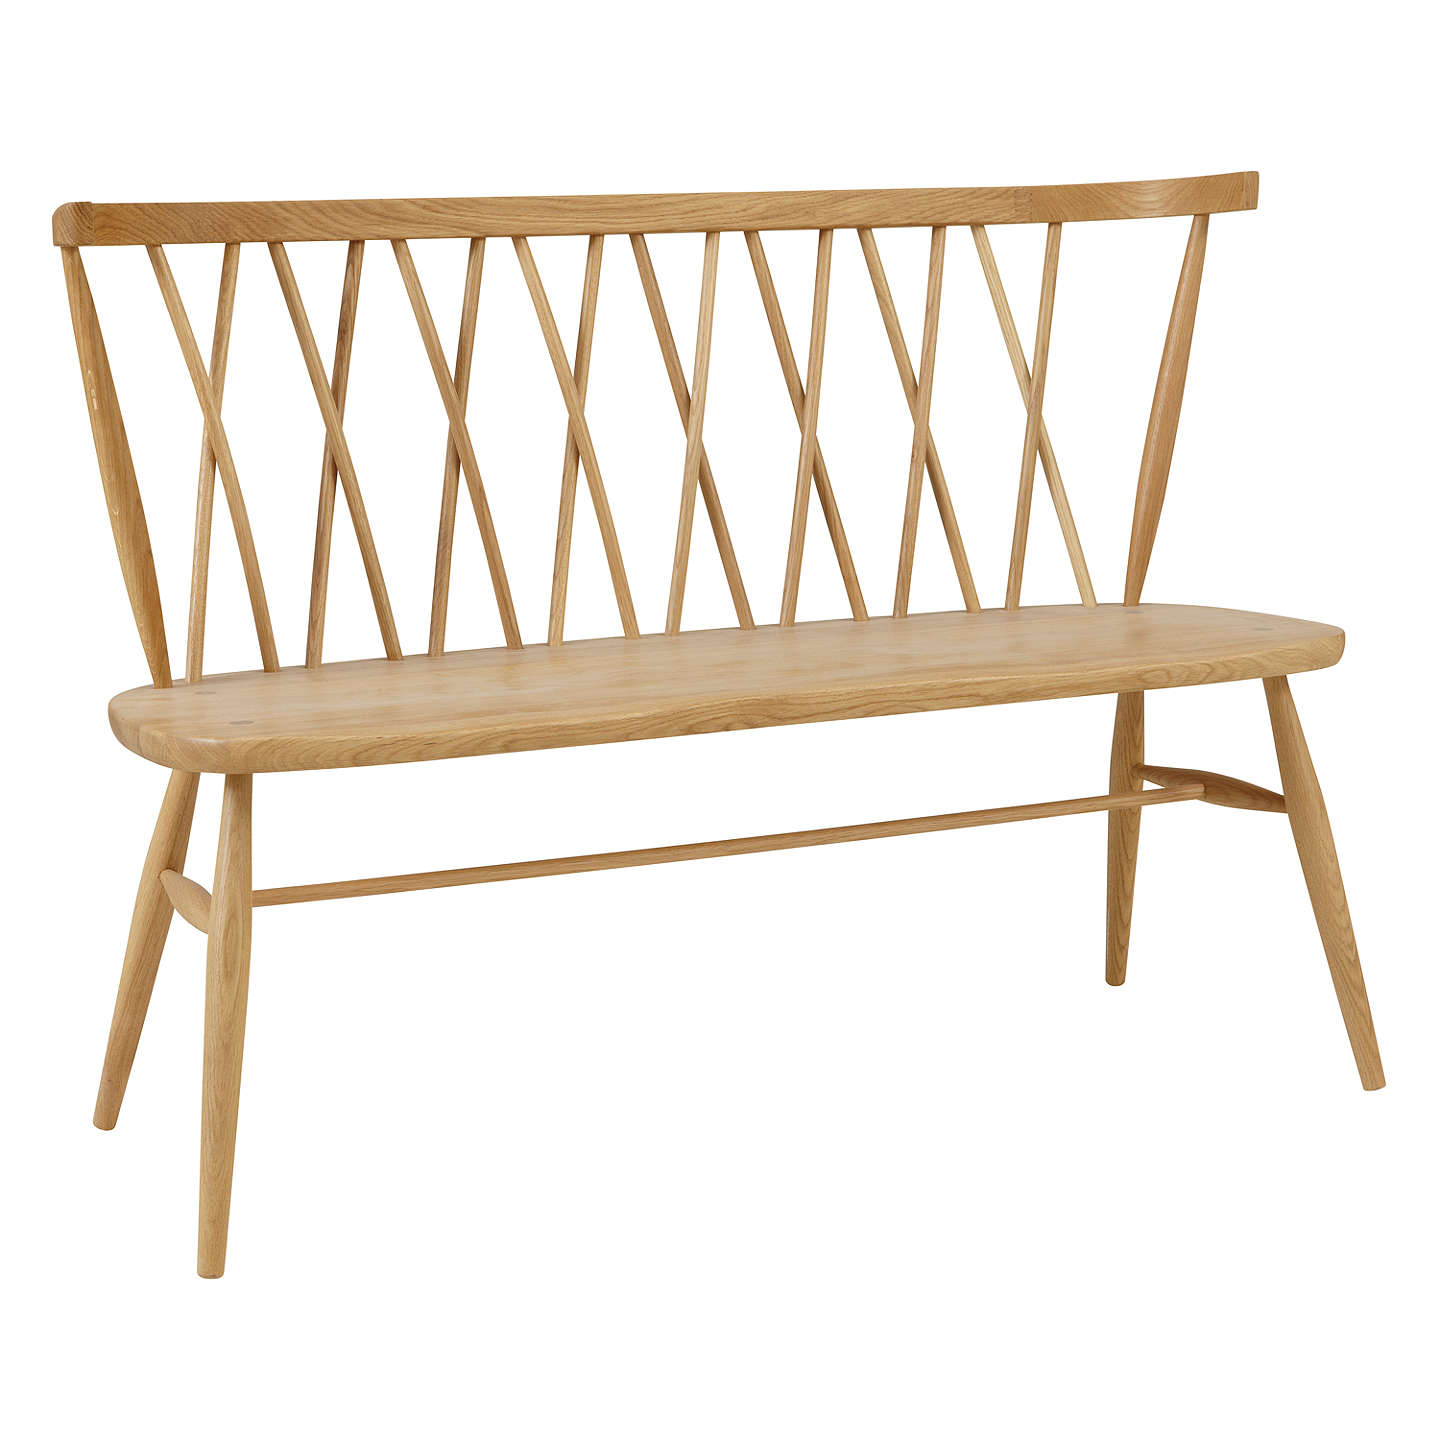 ercol for john lewis chiltern 3-seater dining bench, light wood at 3 Seater Dining Bench